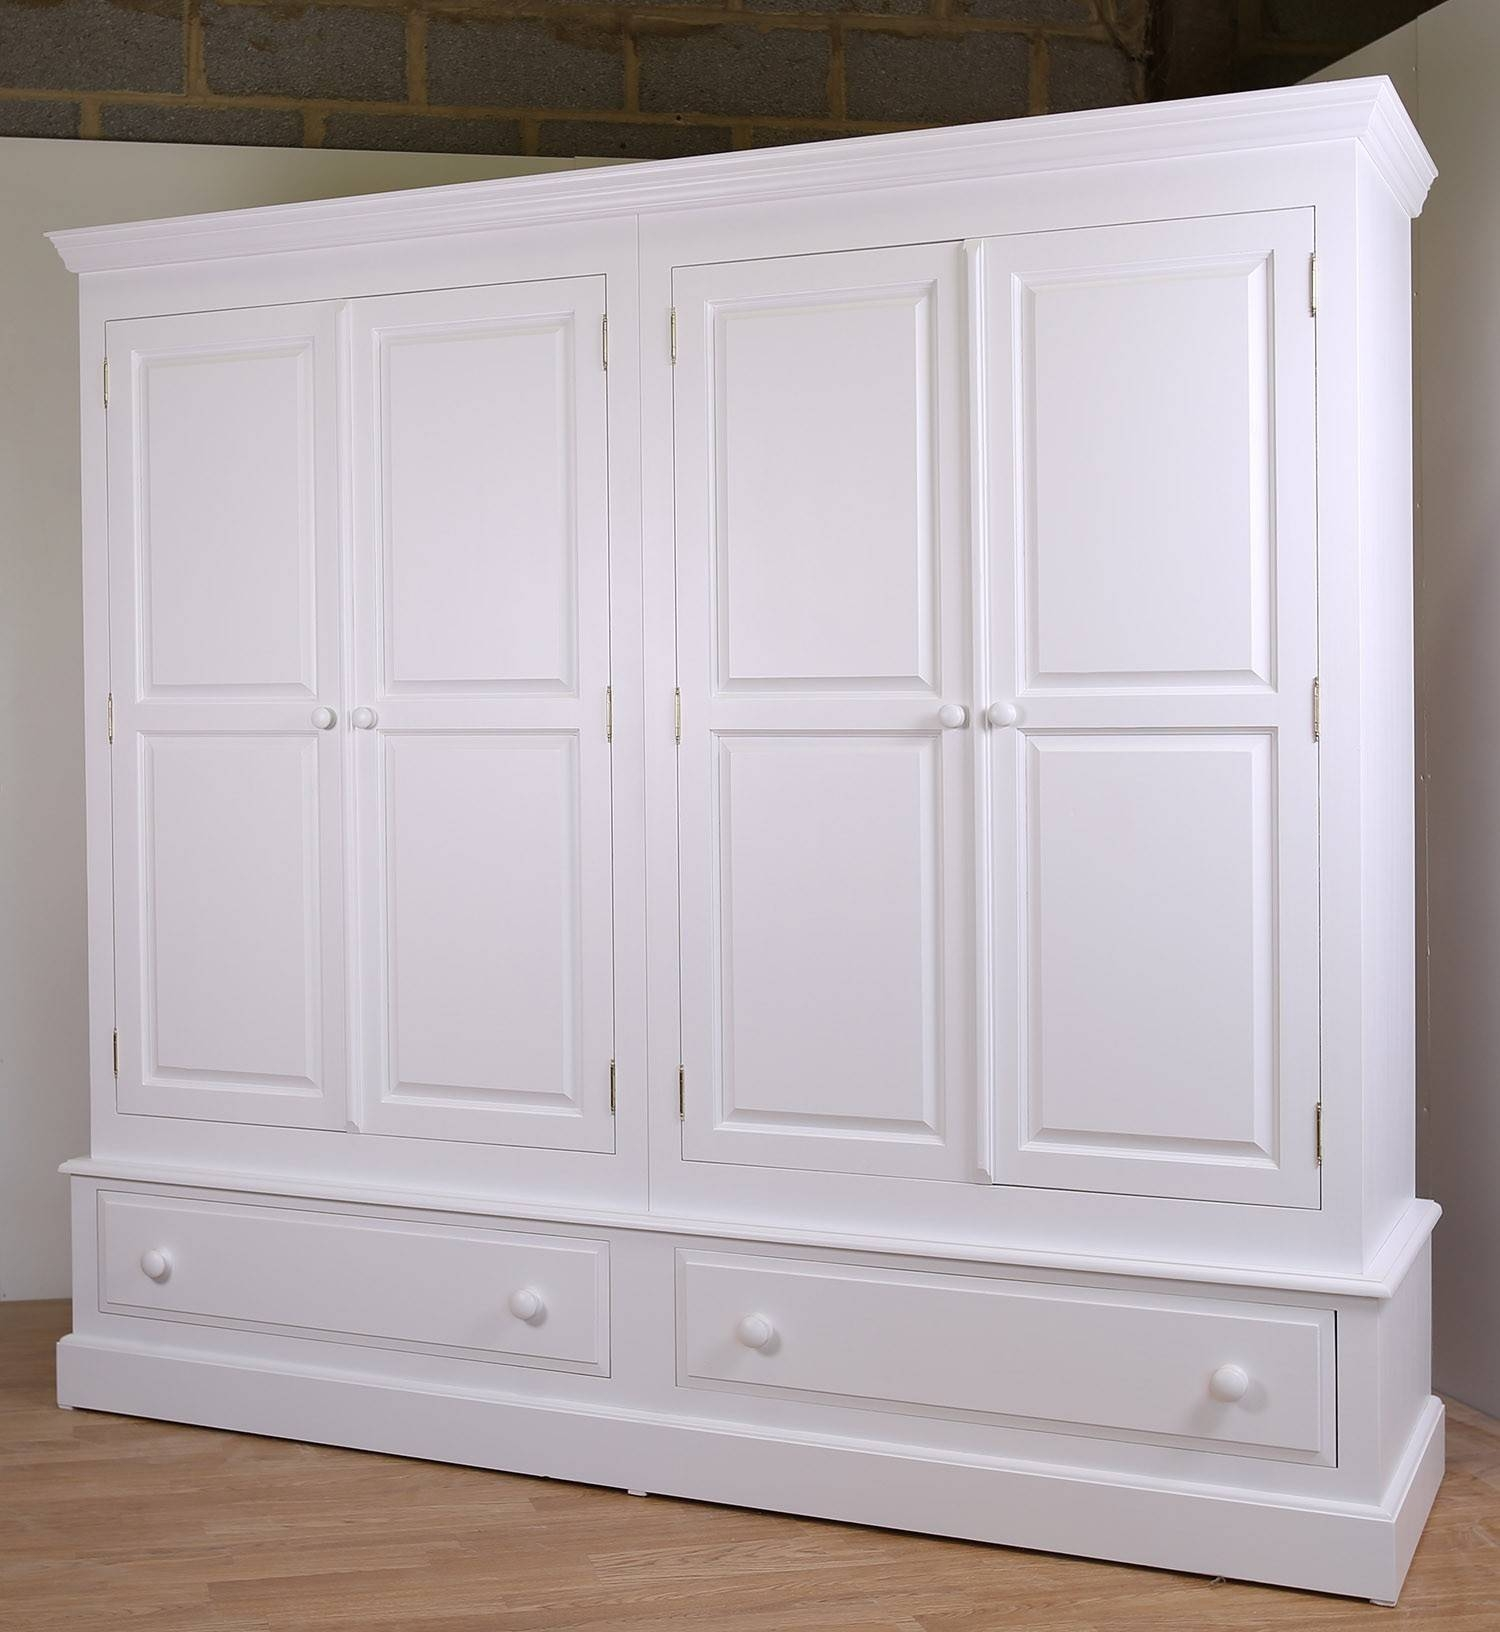 Farrow & Ball Painted 4 Door Wardrobe With Drawers In 3 Sizes inside White Painted Wardrobes (Image 2 of 15)